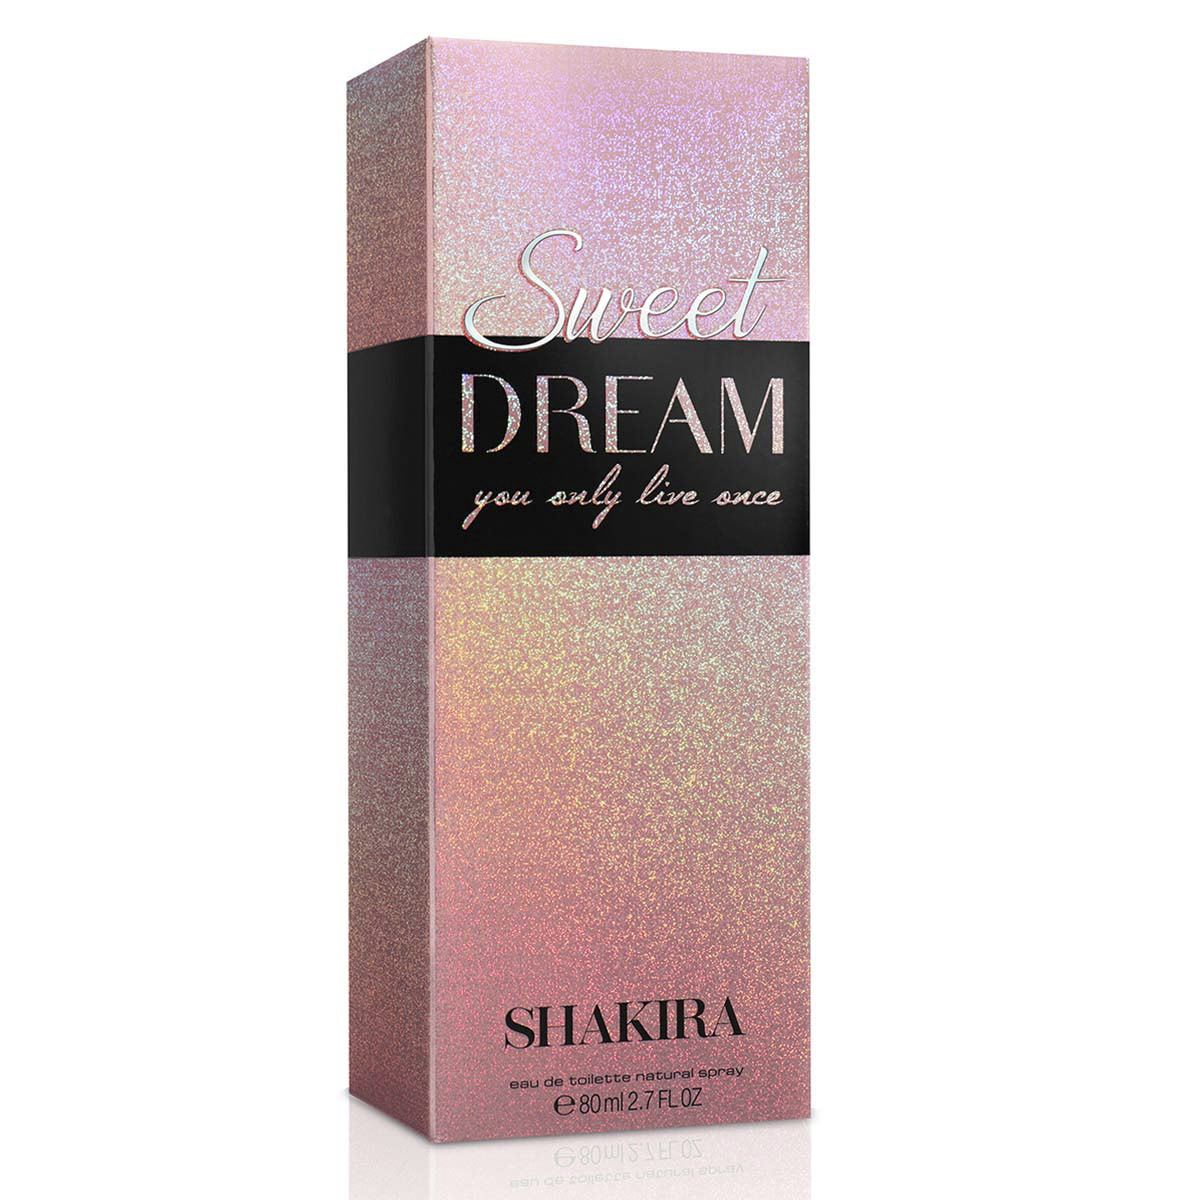 Fragancia para dama, Shakira, Sweet Dream, EDT 80ml